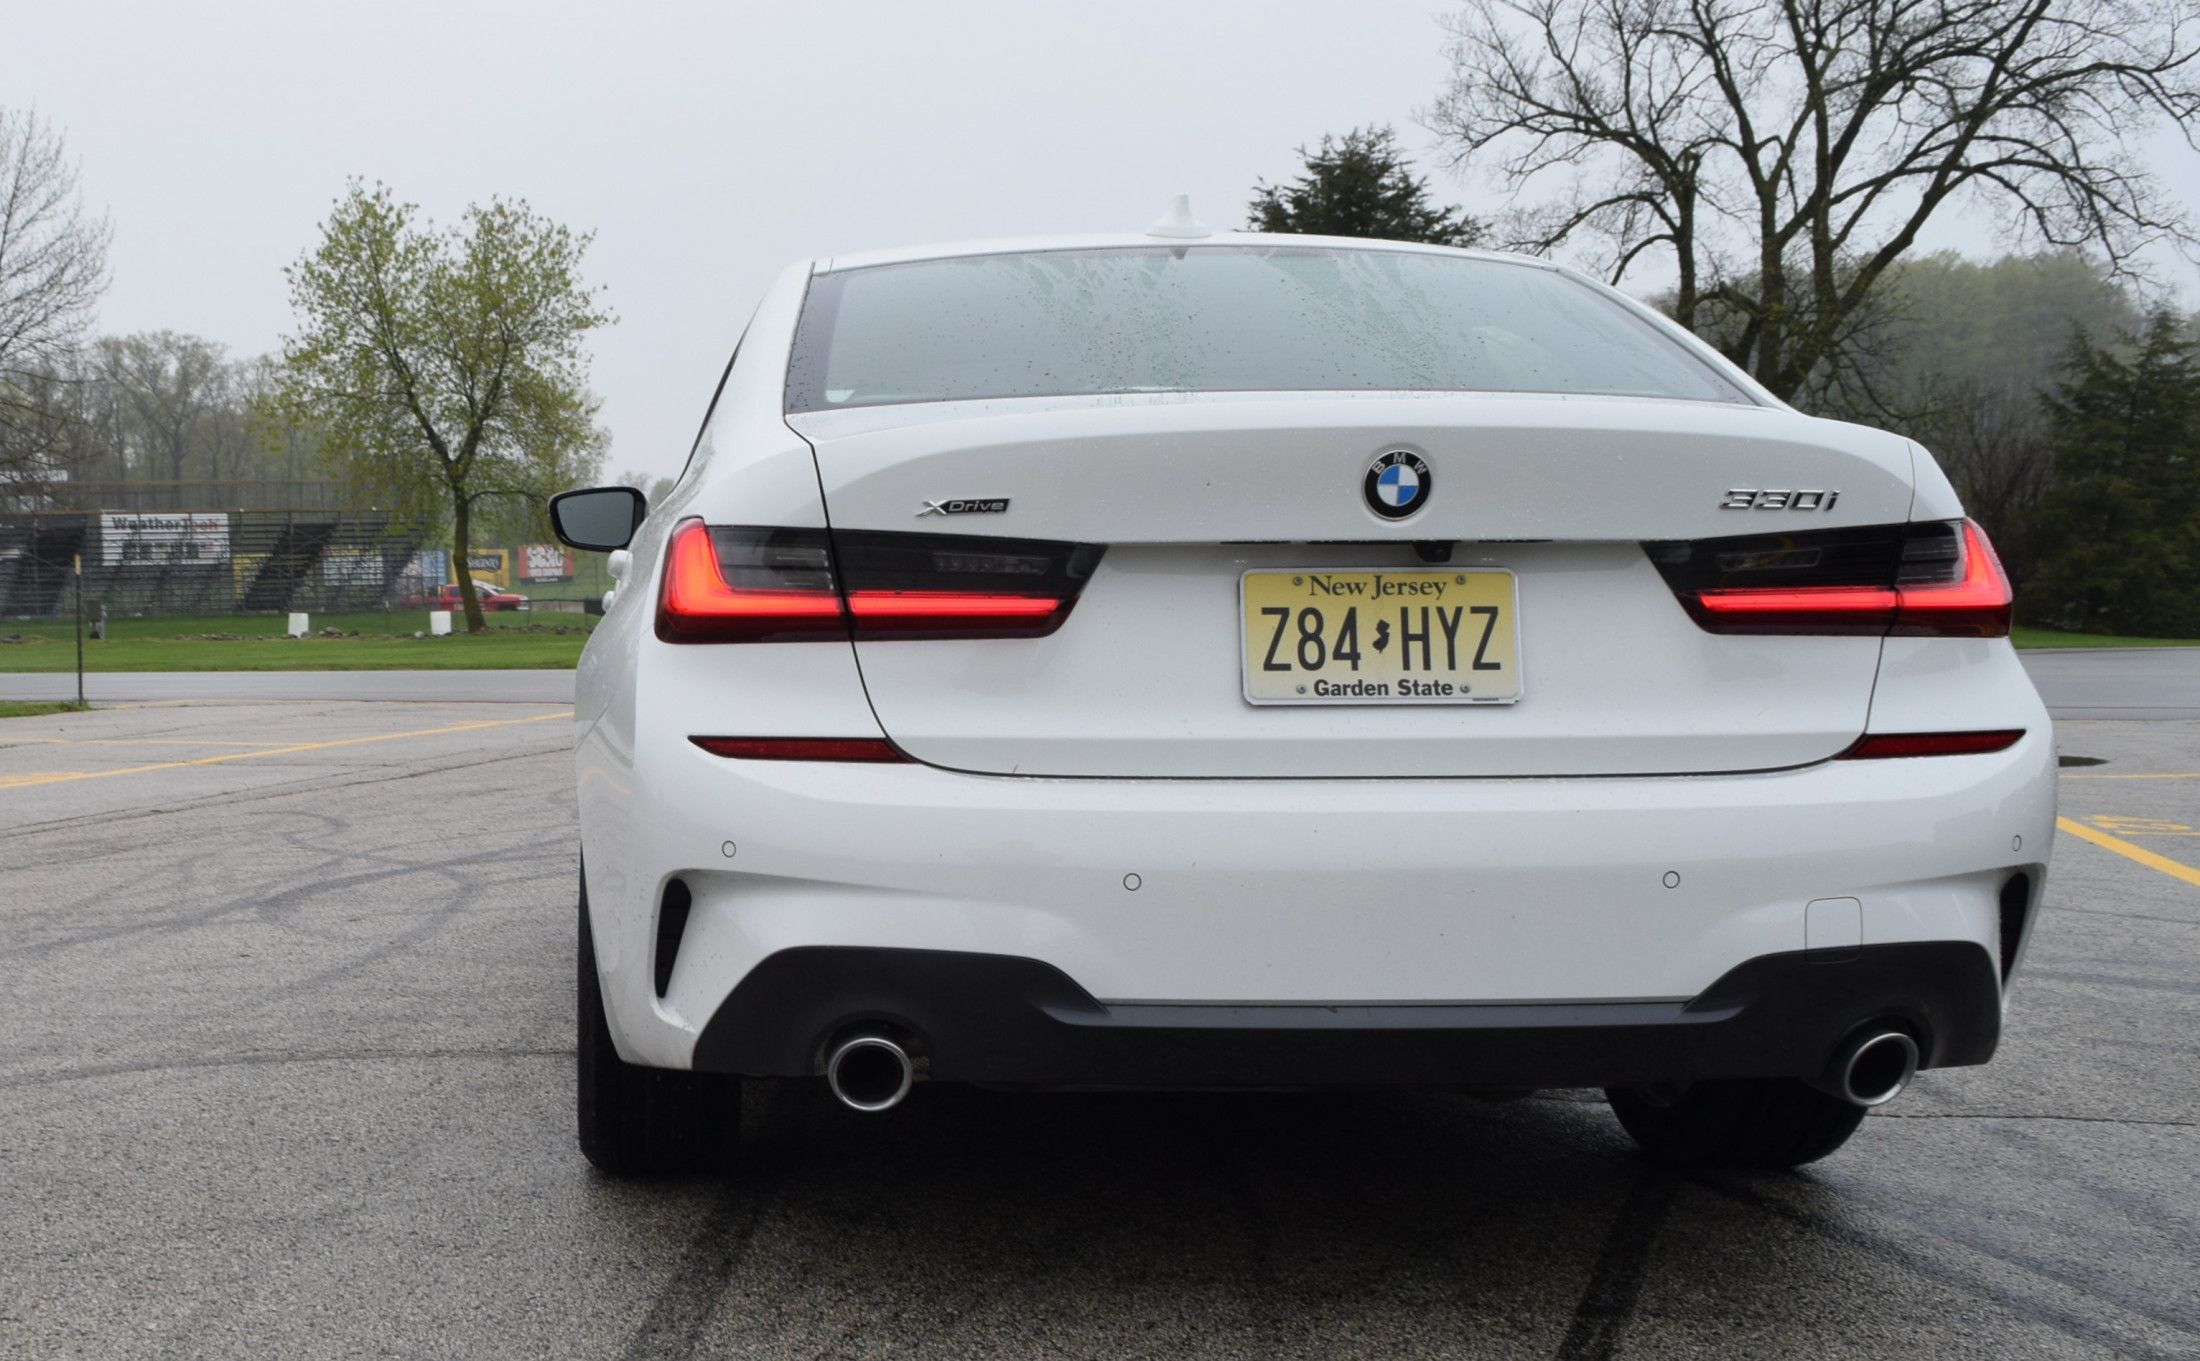 2020 Bmw 330i M Sport Xdrive First Drive Review Video Photo Gallery Car Shopping Car Revs Daily Com Bmw First Drive Latest Cars